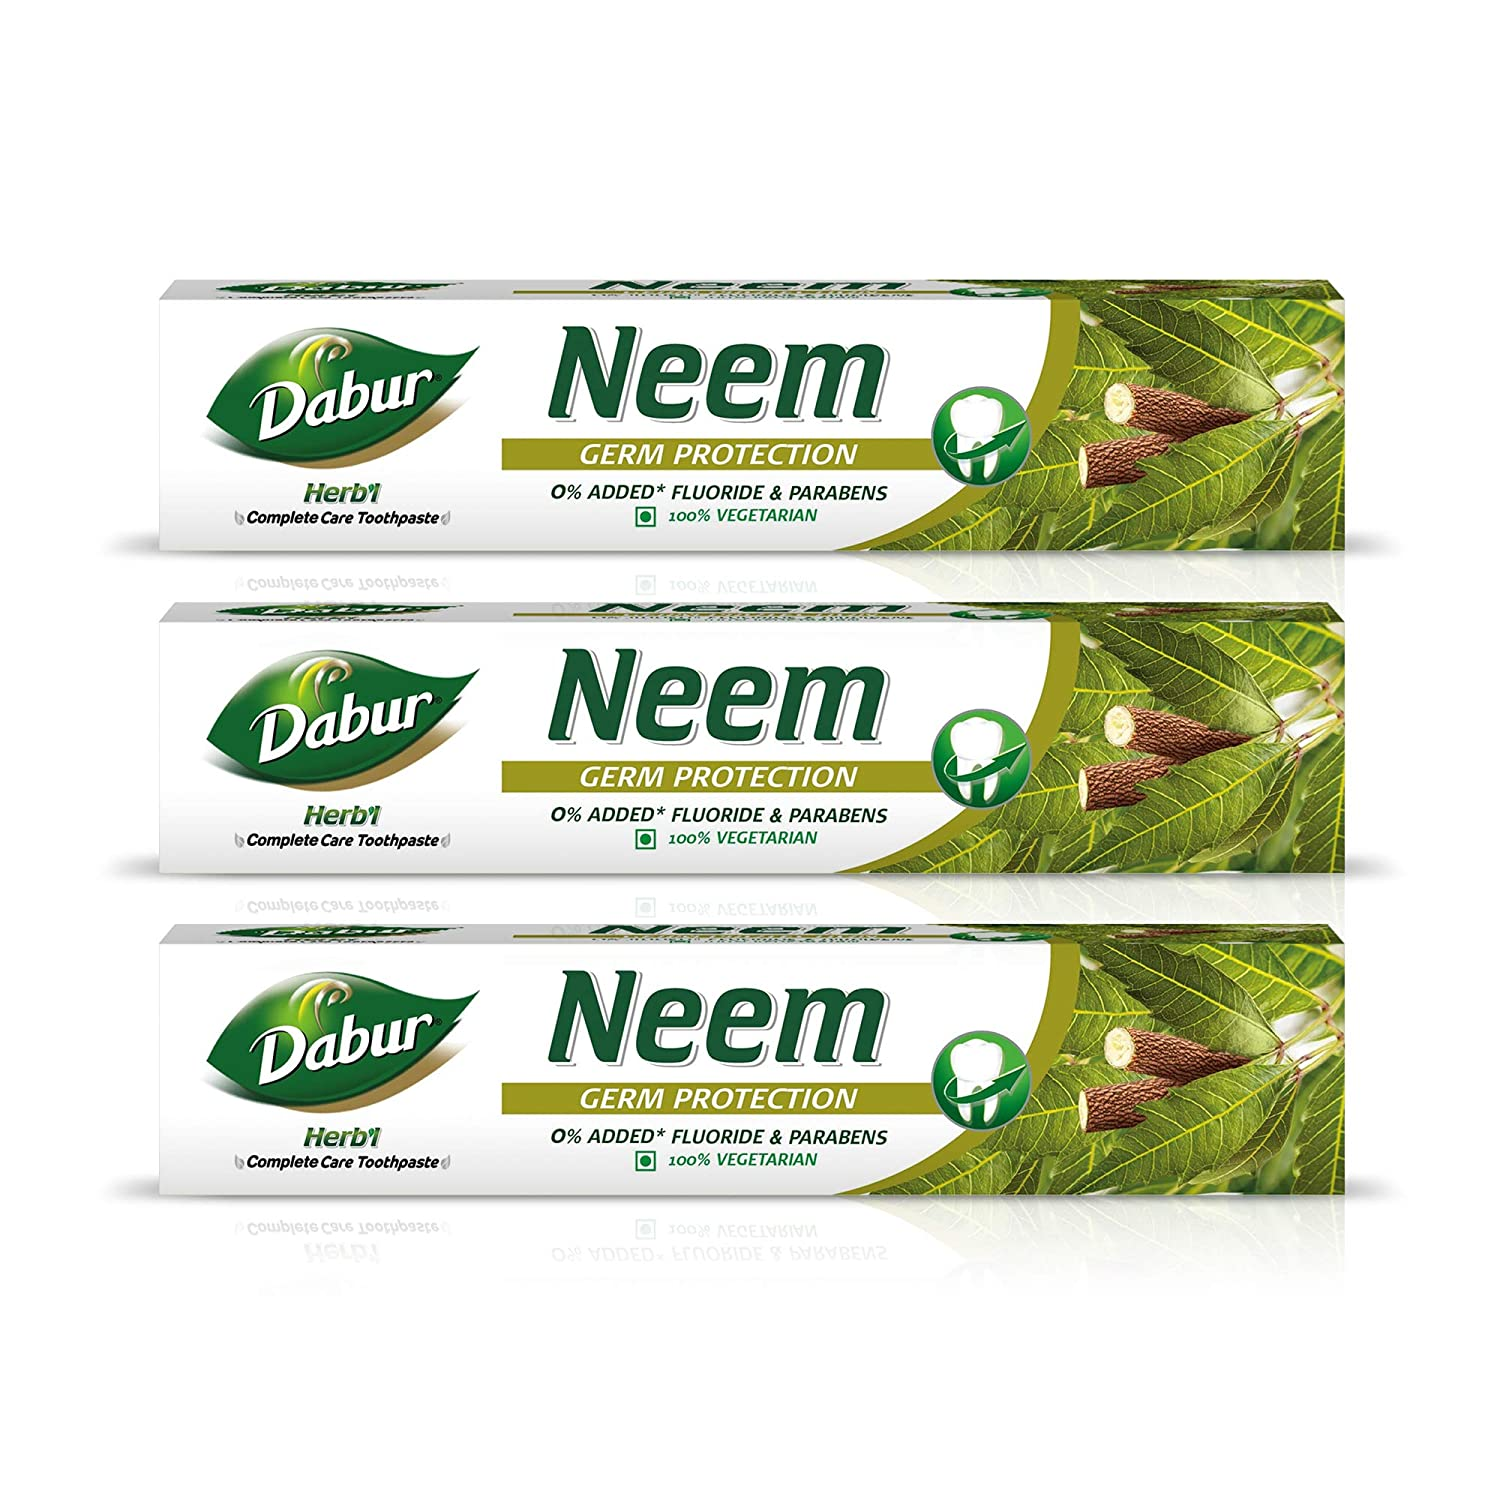 Dabur Herb'l Neem Toothpaste with No added Fluoride and Parabens – 200 g (Pack of 3)